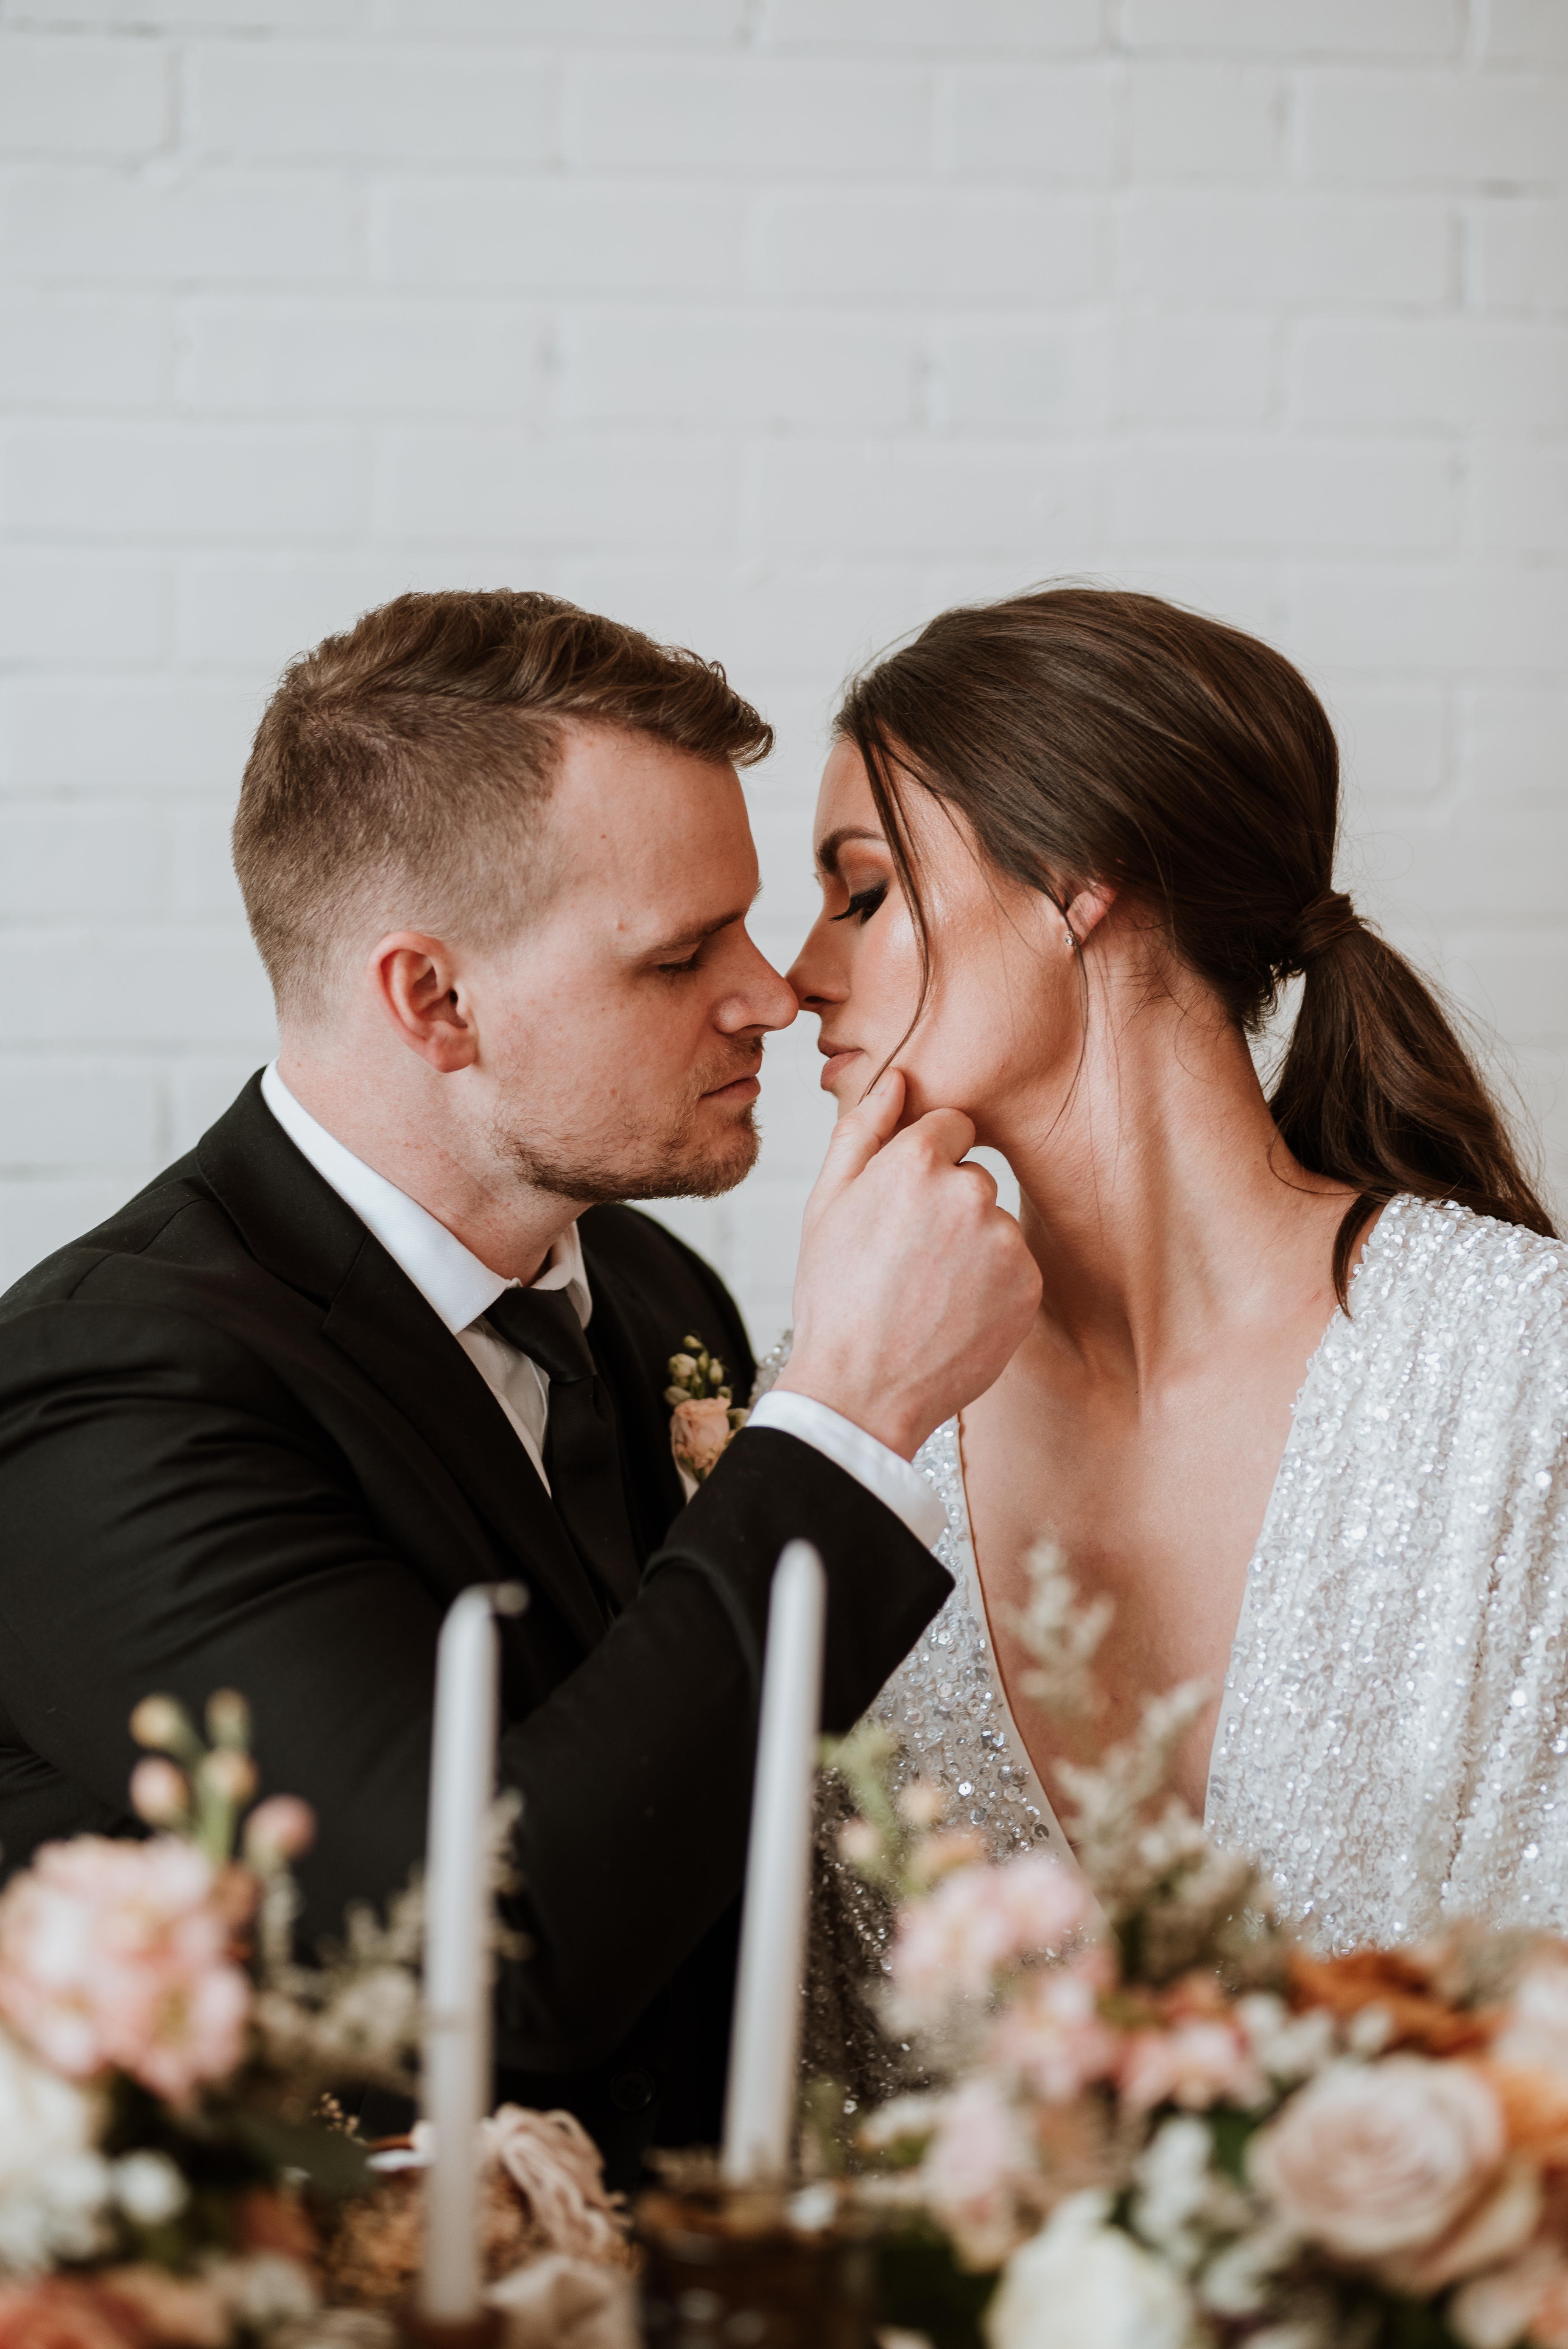 StyledWithLoveShootout-DowntownElopement-15